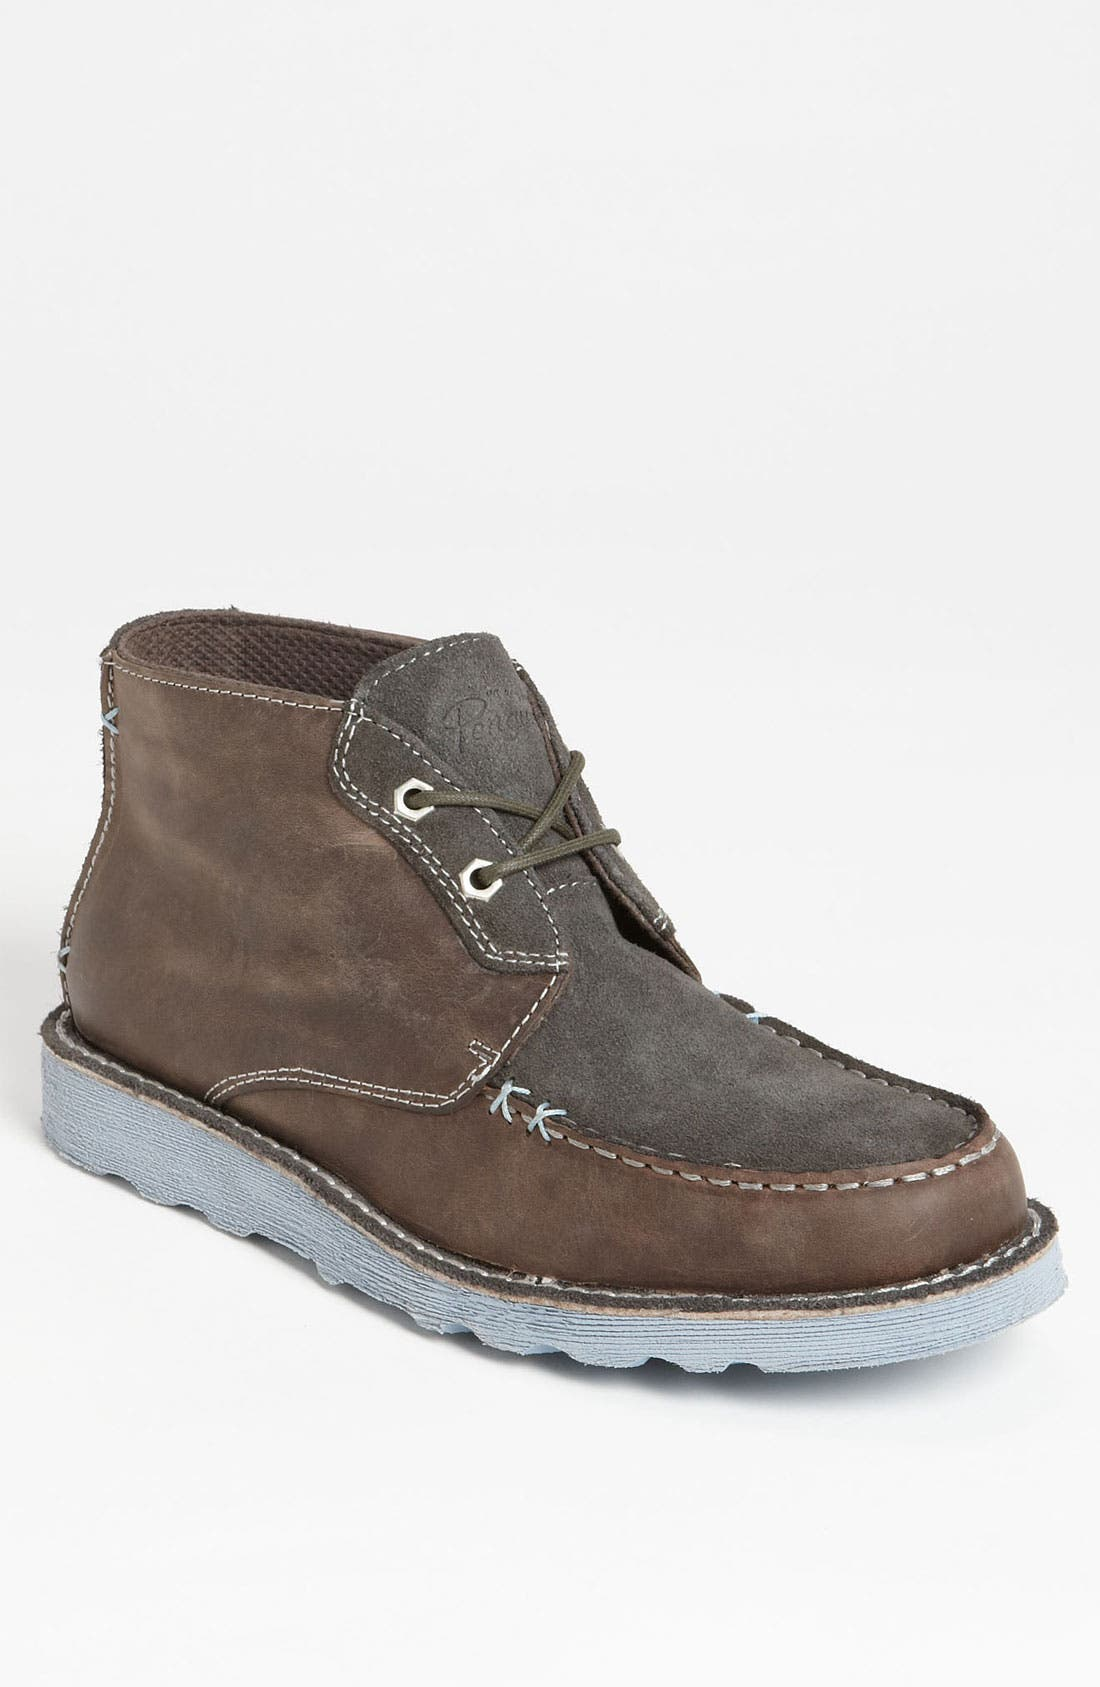 Alternate Image 1 Selected - Original Penguin 'Moka Kahn' Chukka Boot (Online Only)